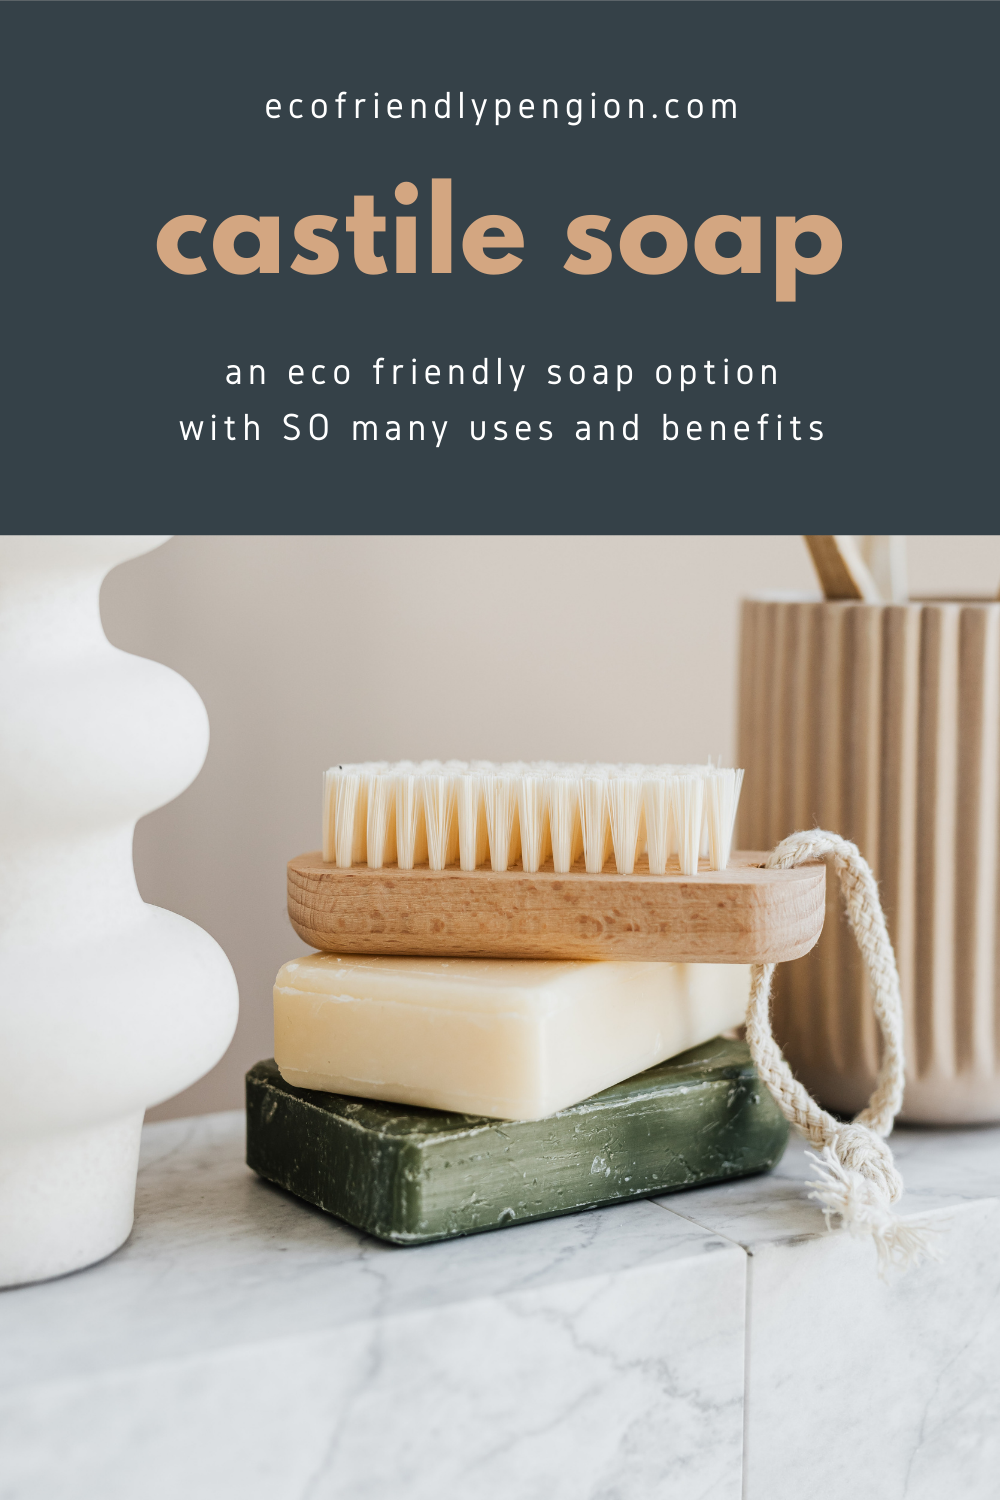 image is of soaps and it says the benefits of castile soap